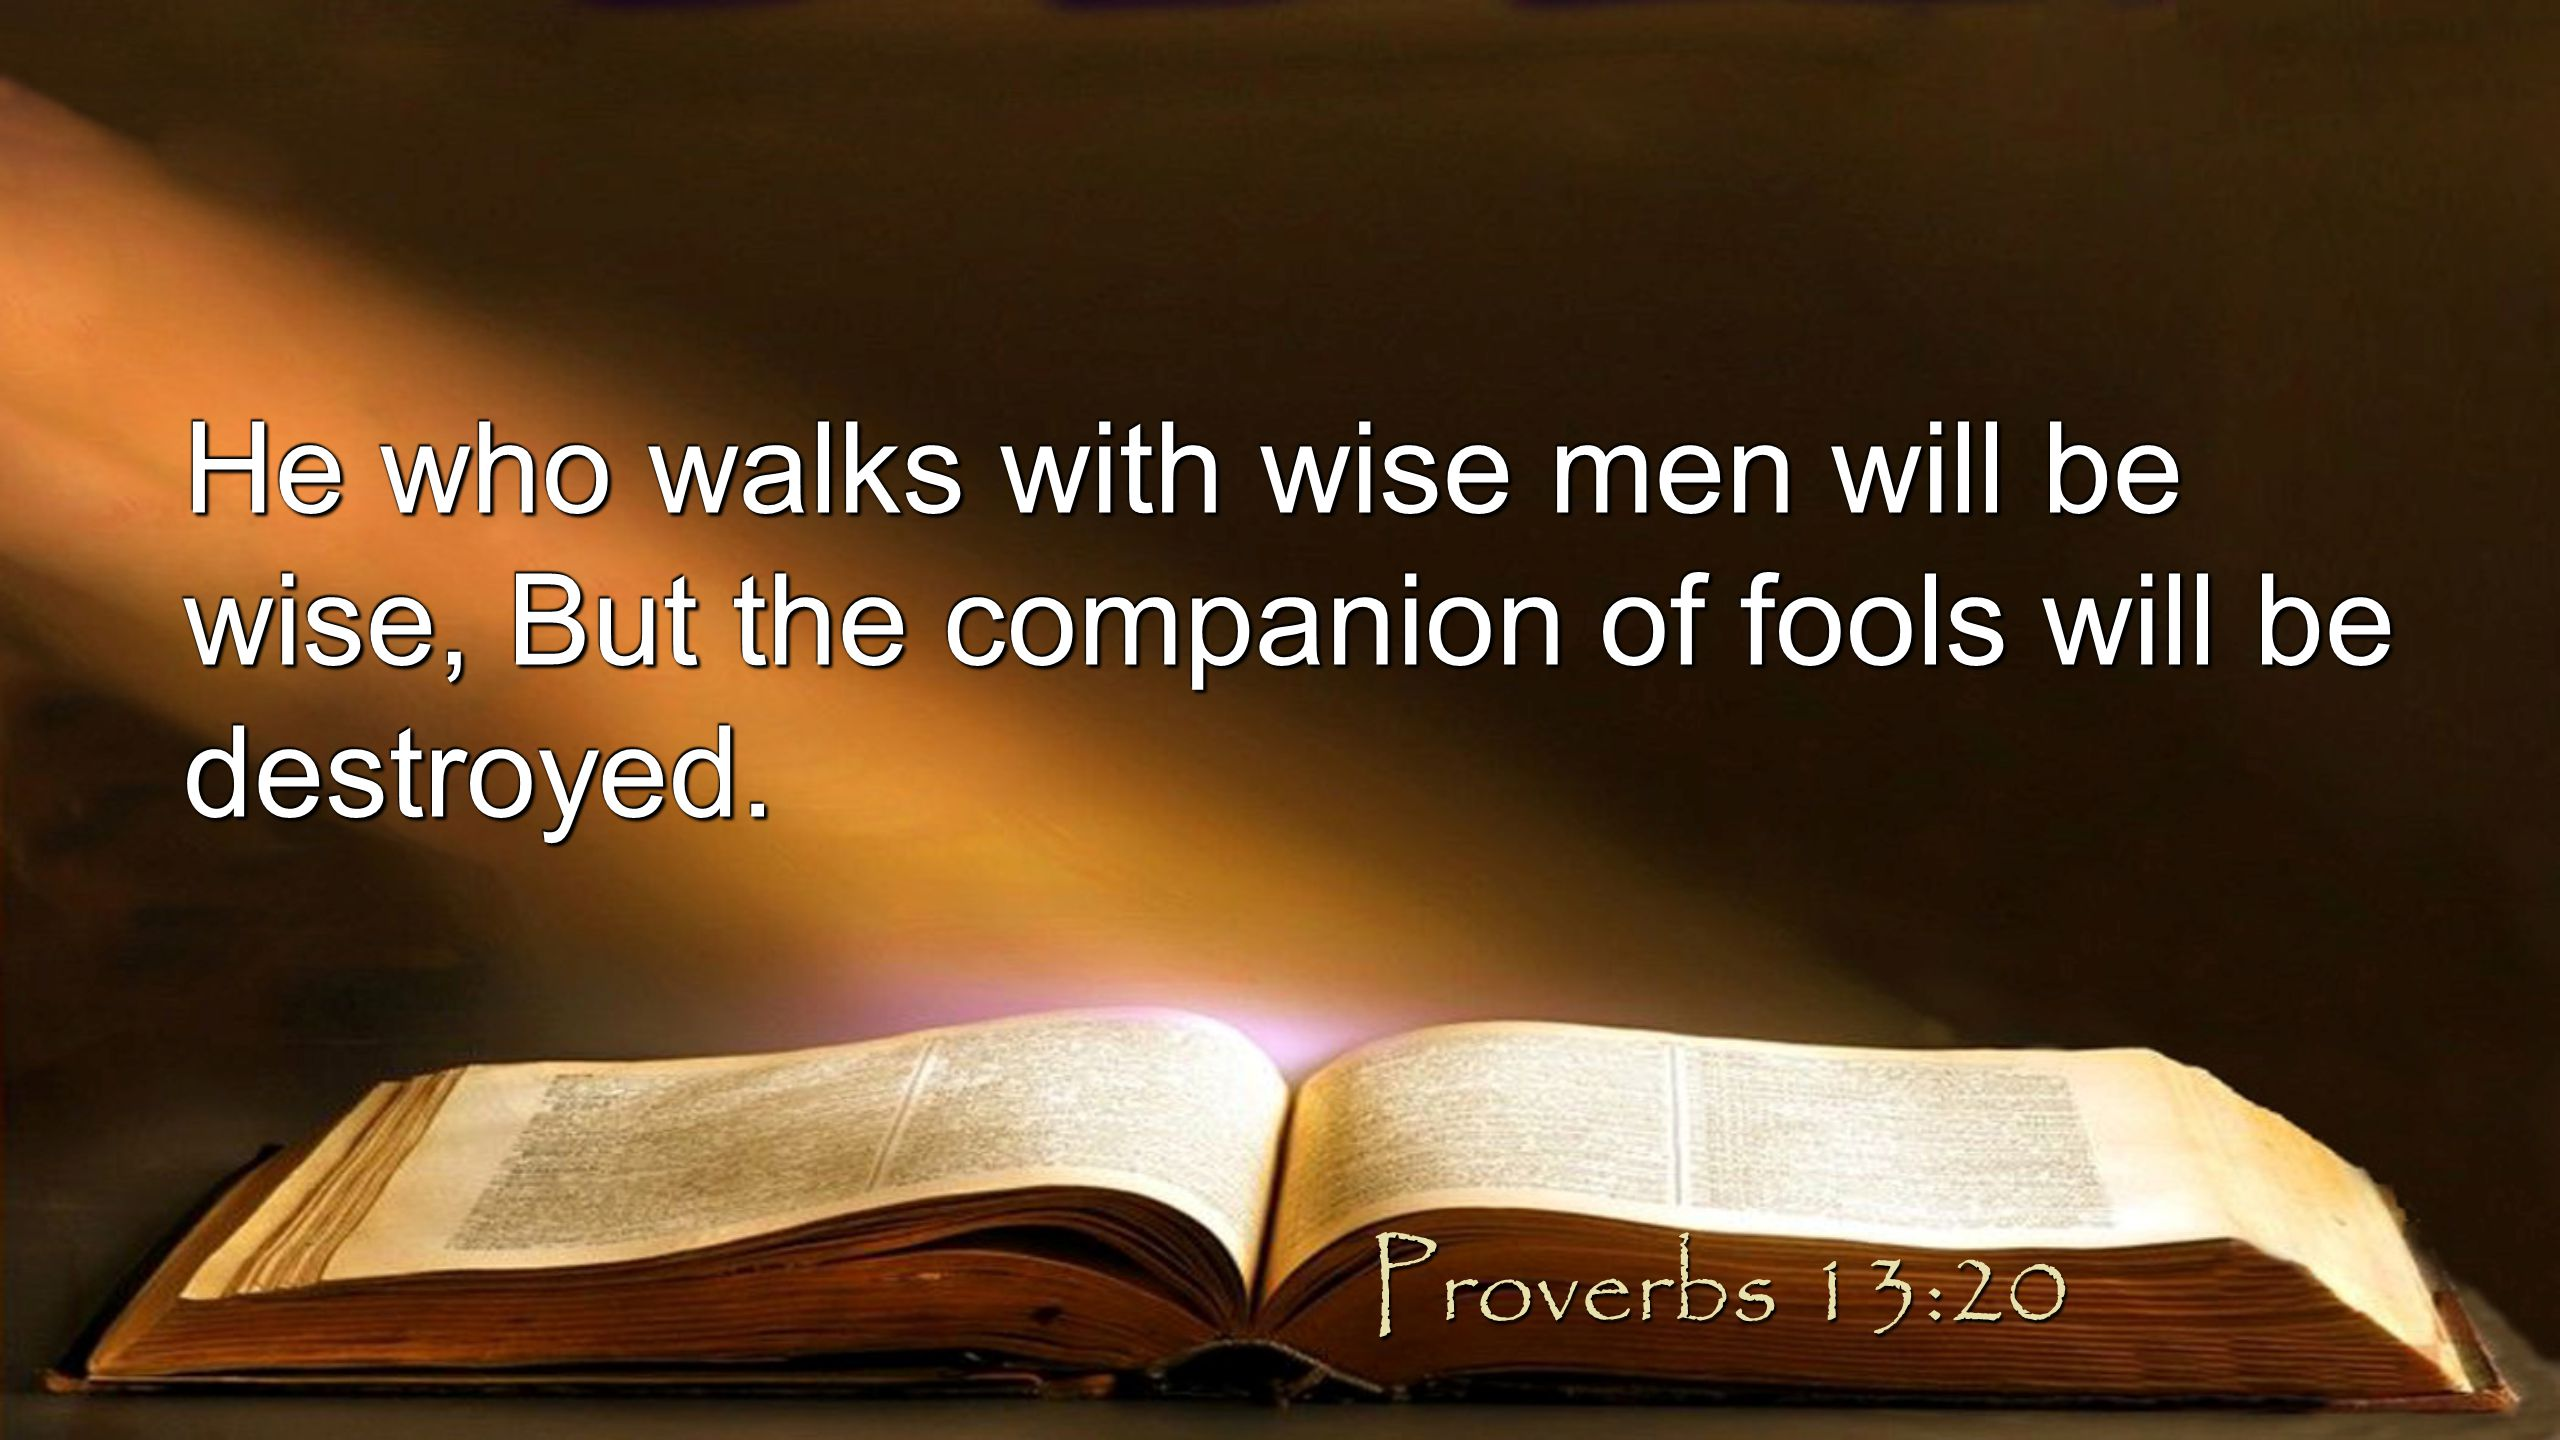 He who walks with wise men will be wise, But the companion of fools will be destroyed.